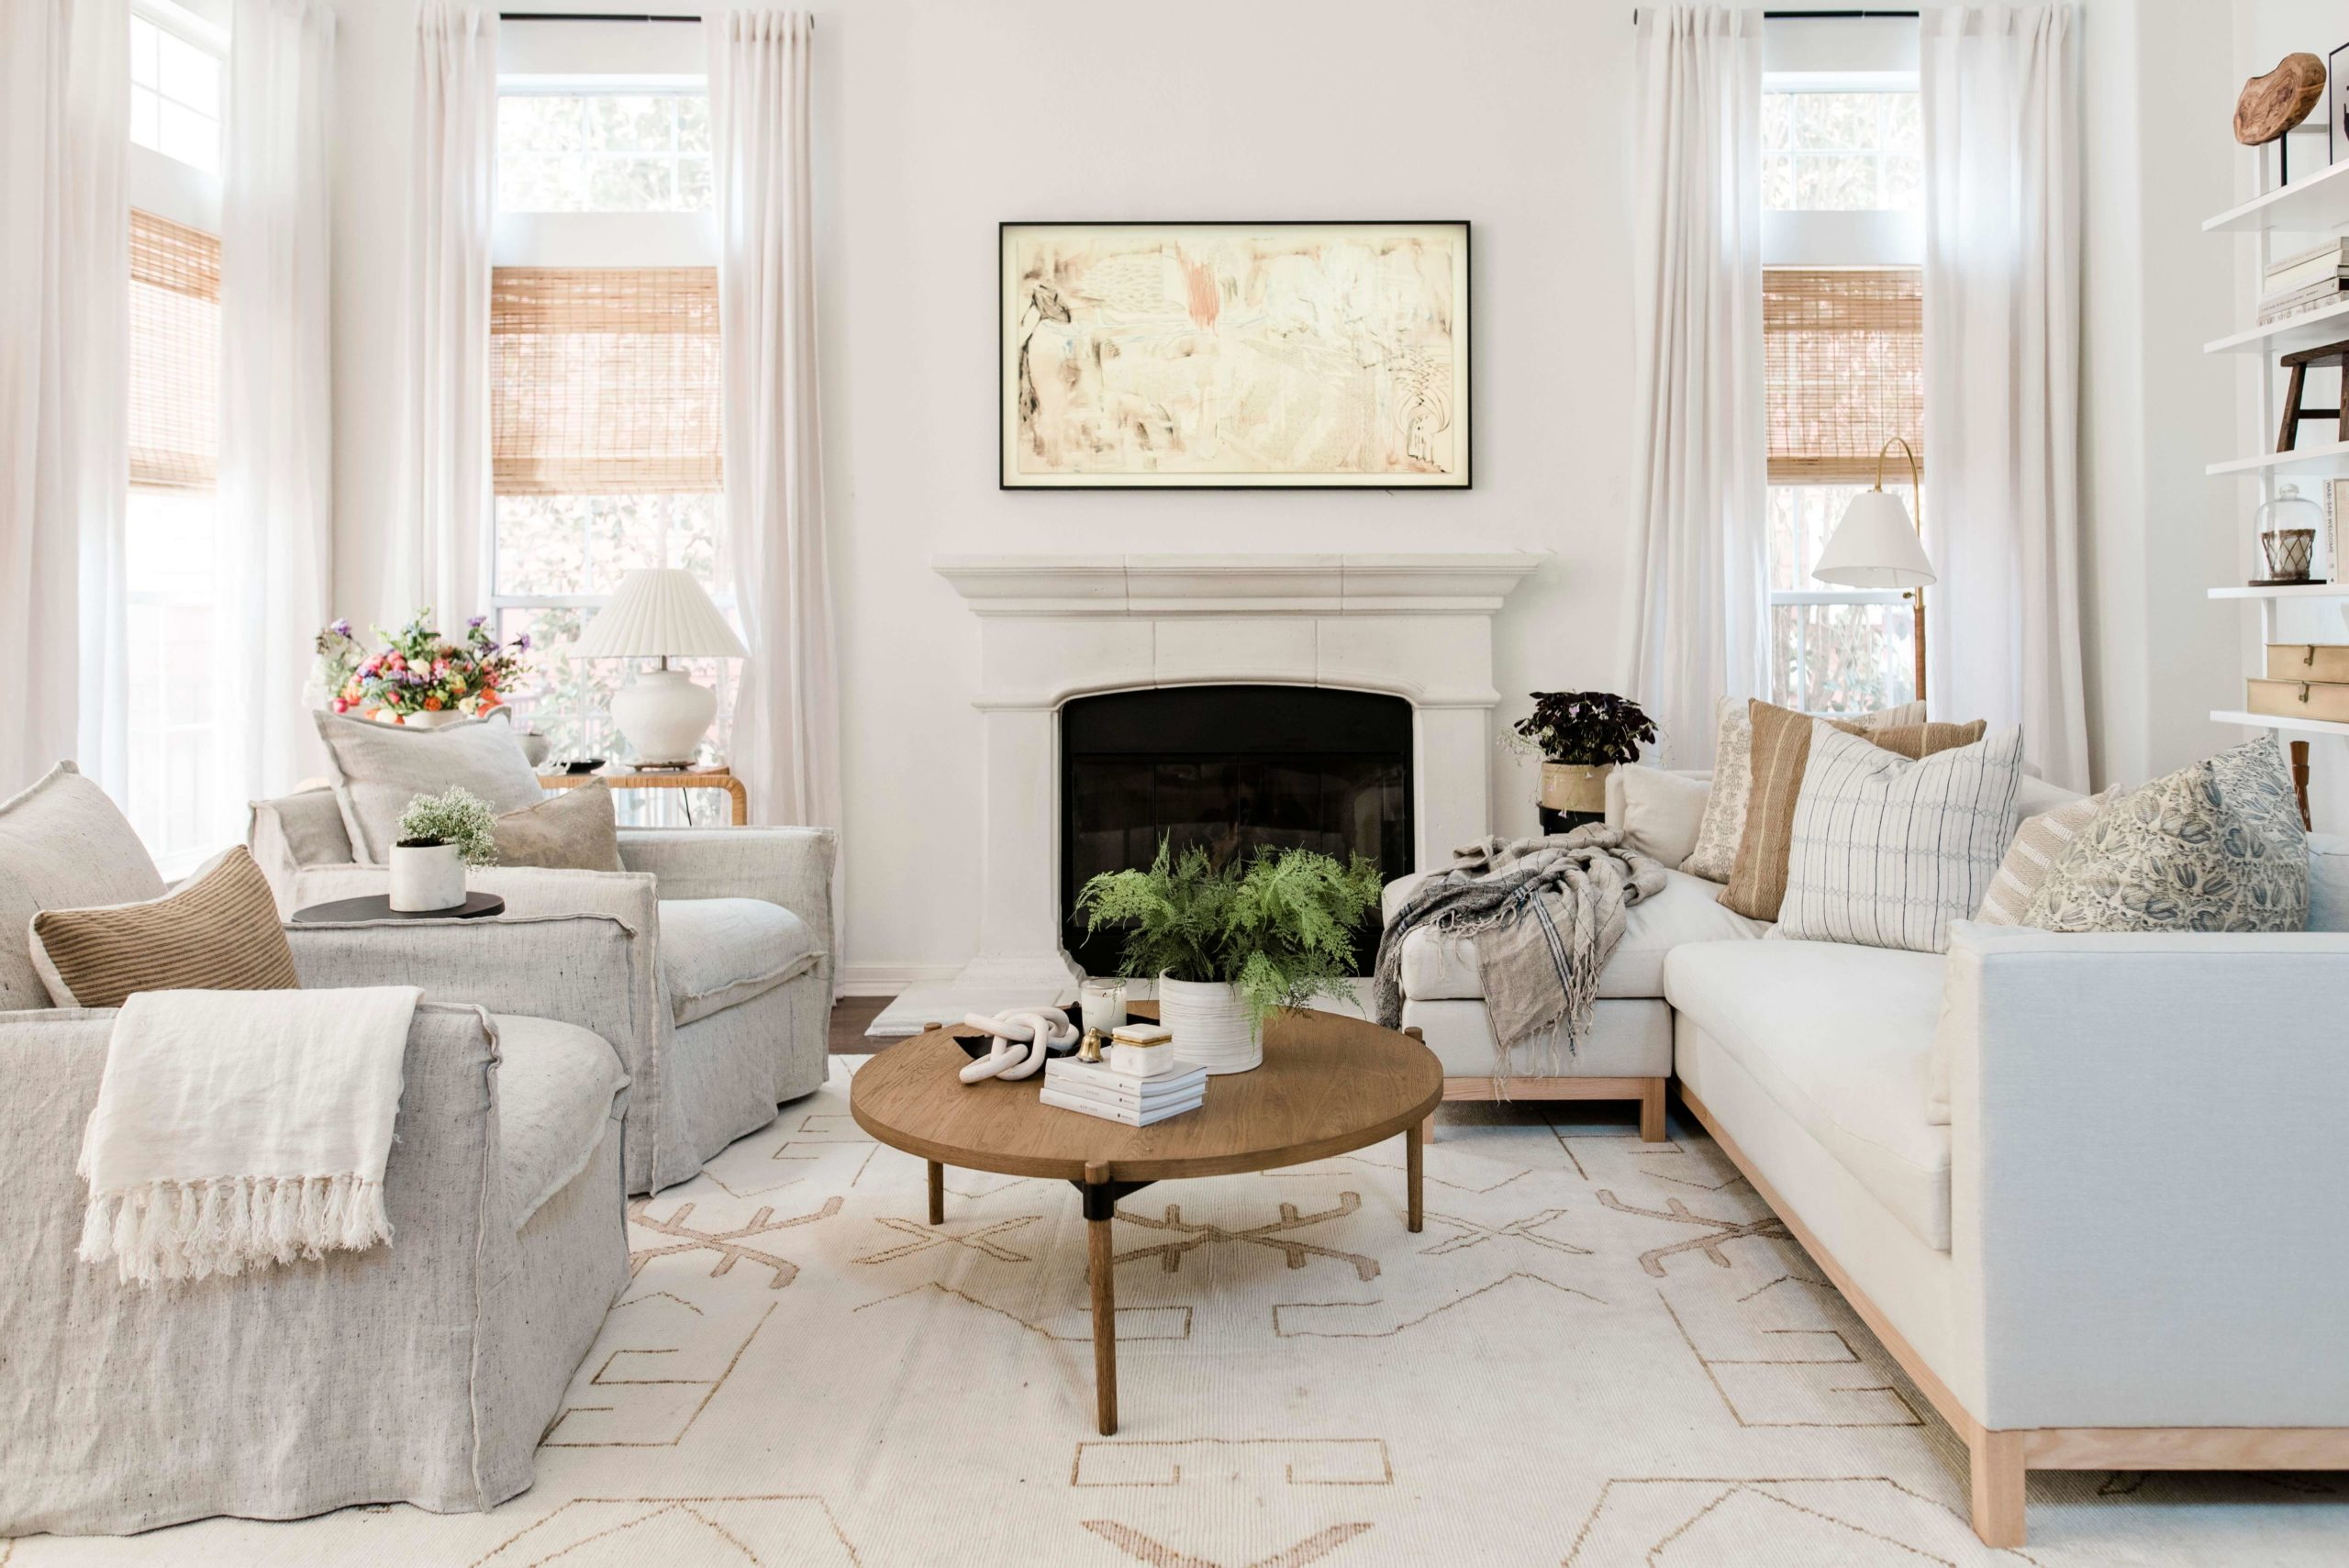 California Coastal Living Room GMDxLG Furniture Collection Hollingworth Sofa by Los Angeles Designer Ginny Macdonald Design